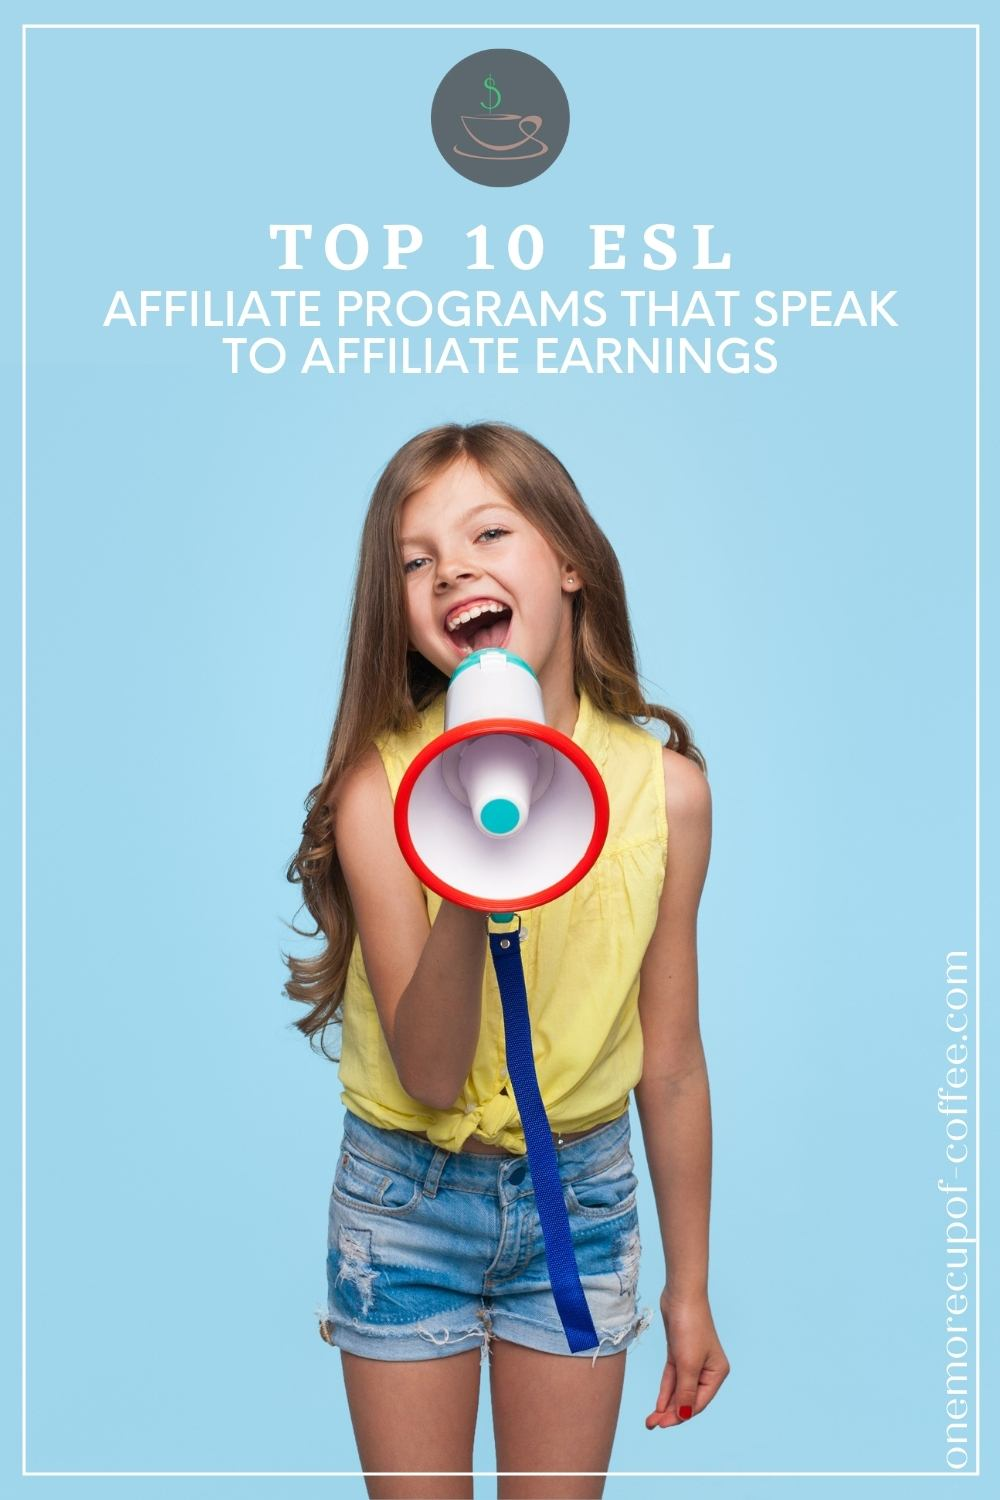 """smiling young girl in yellow sleeveless top and denim shorts talking to a megaphone, with text overlay """"Top 10 ESL Affiliate Programs That Speak To Affiliate Earnings"""""""